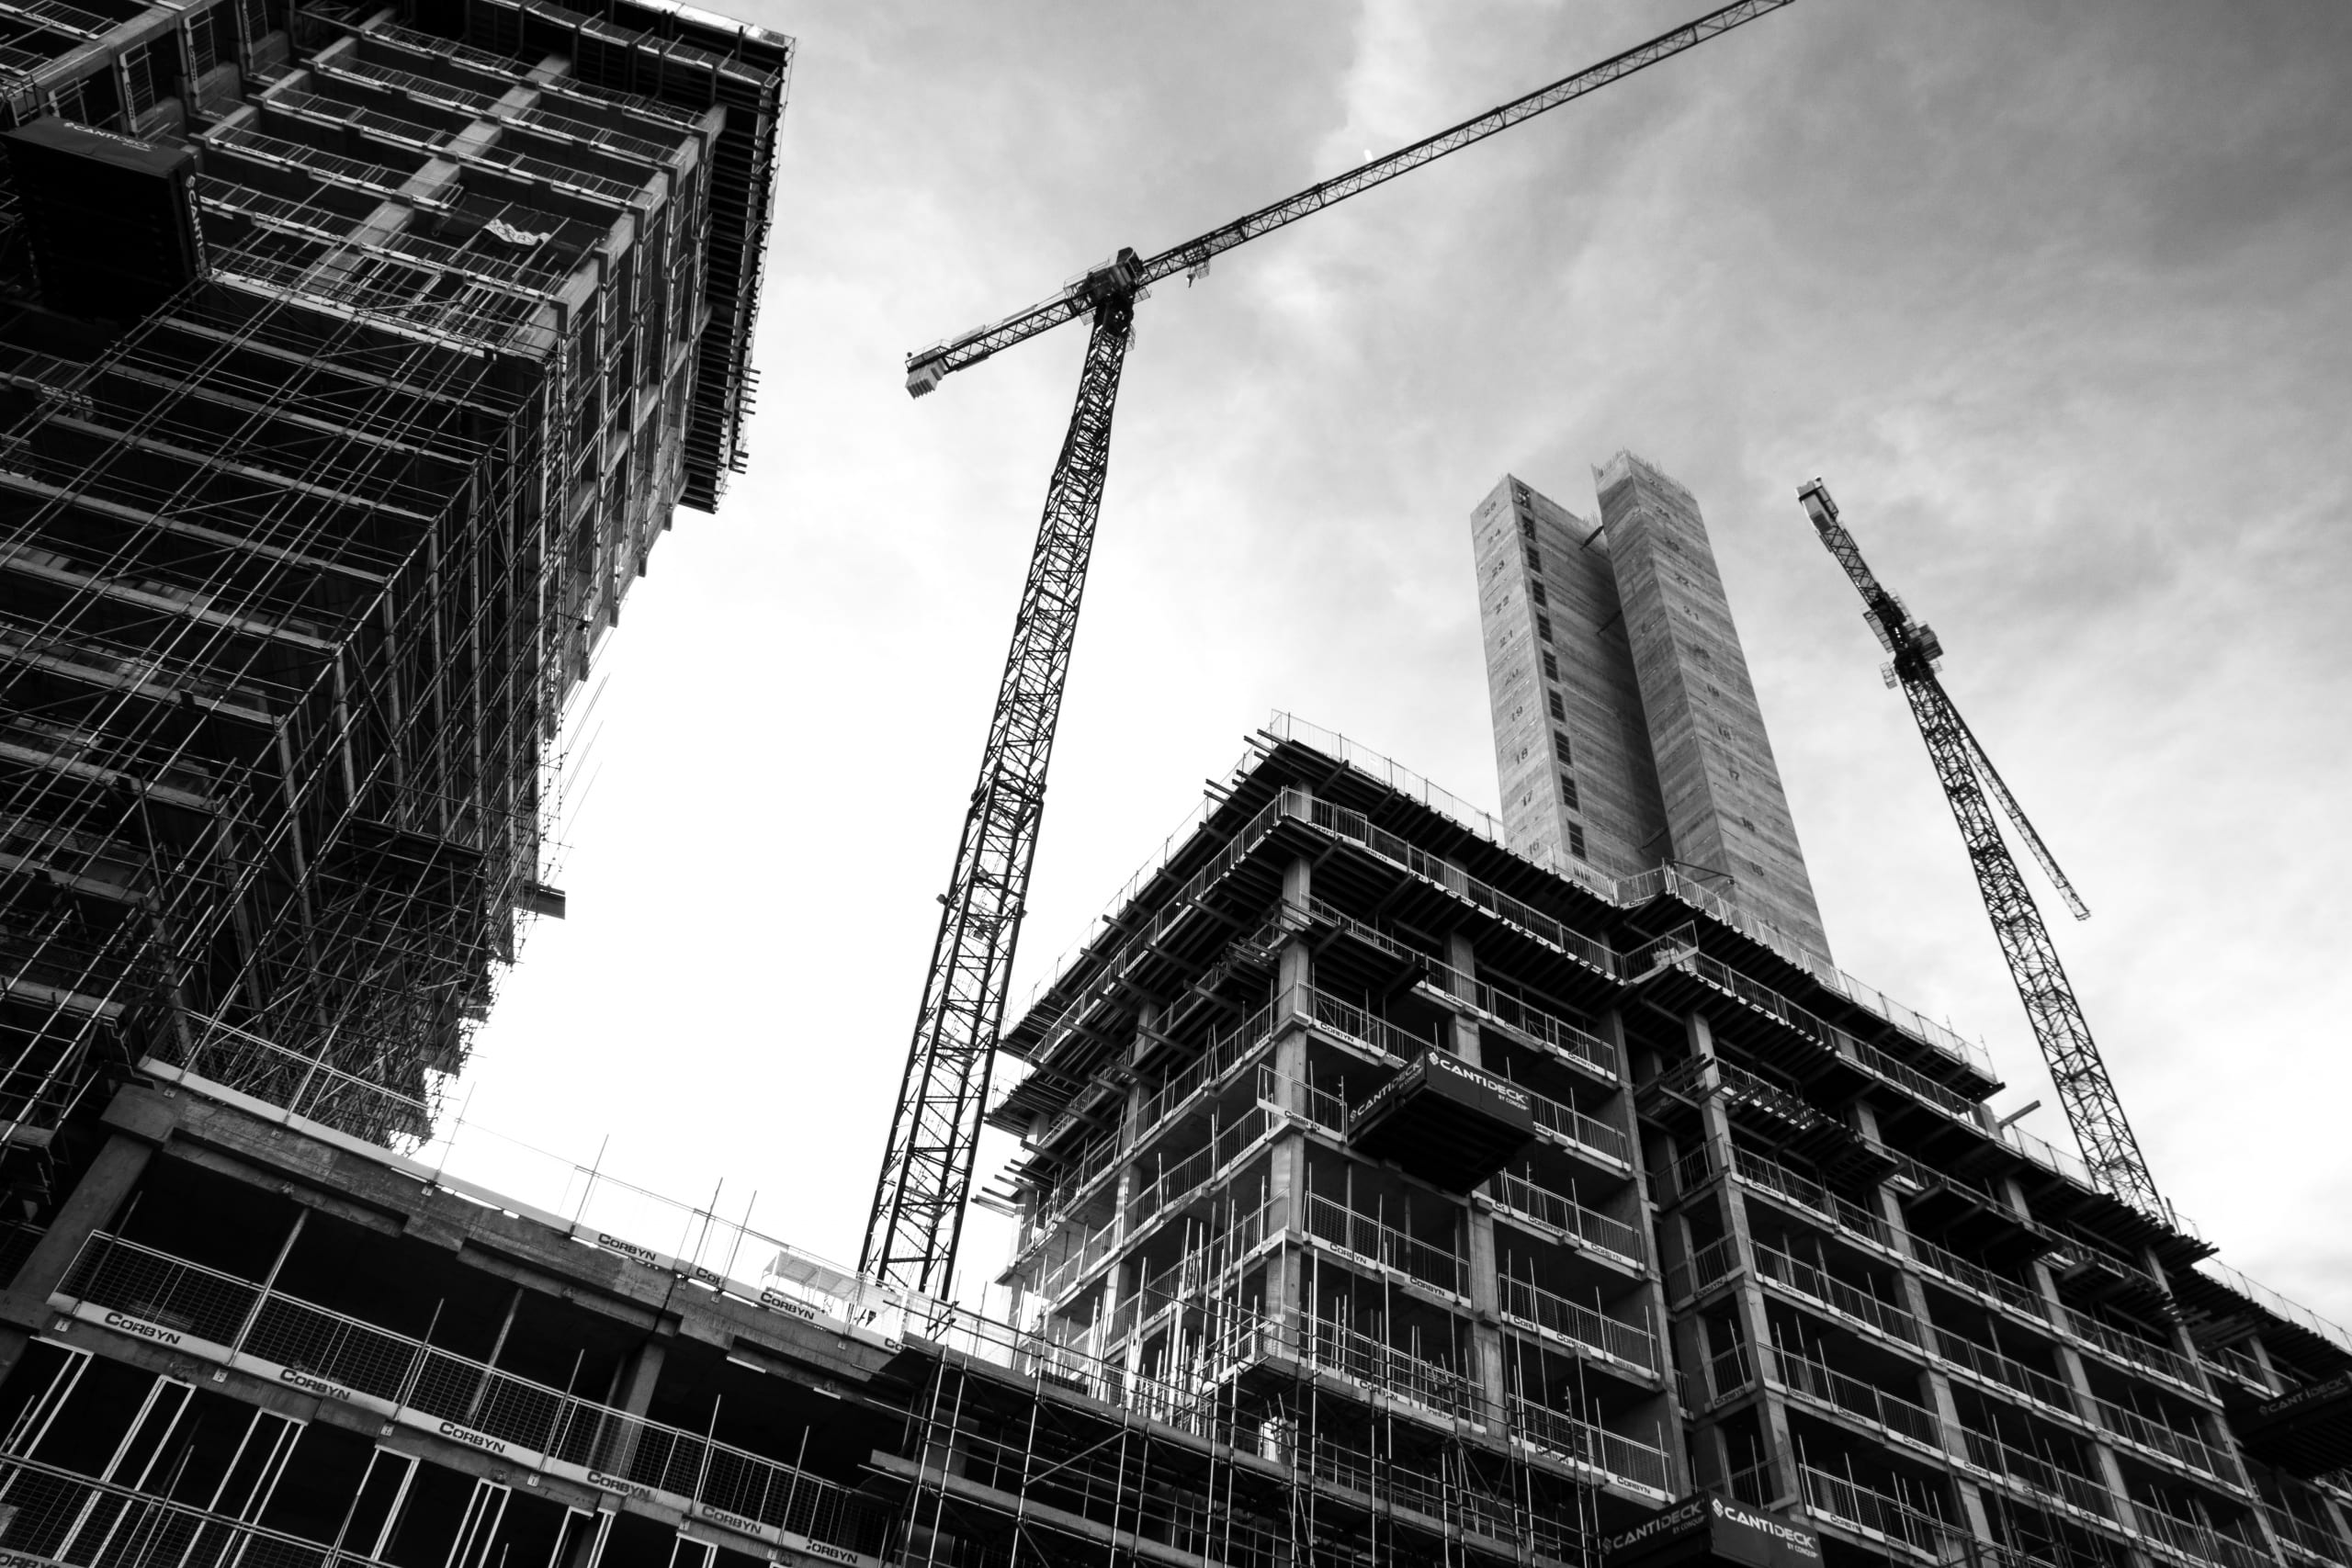 Scaffolding construction site black and white